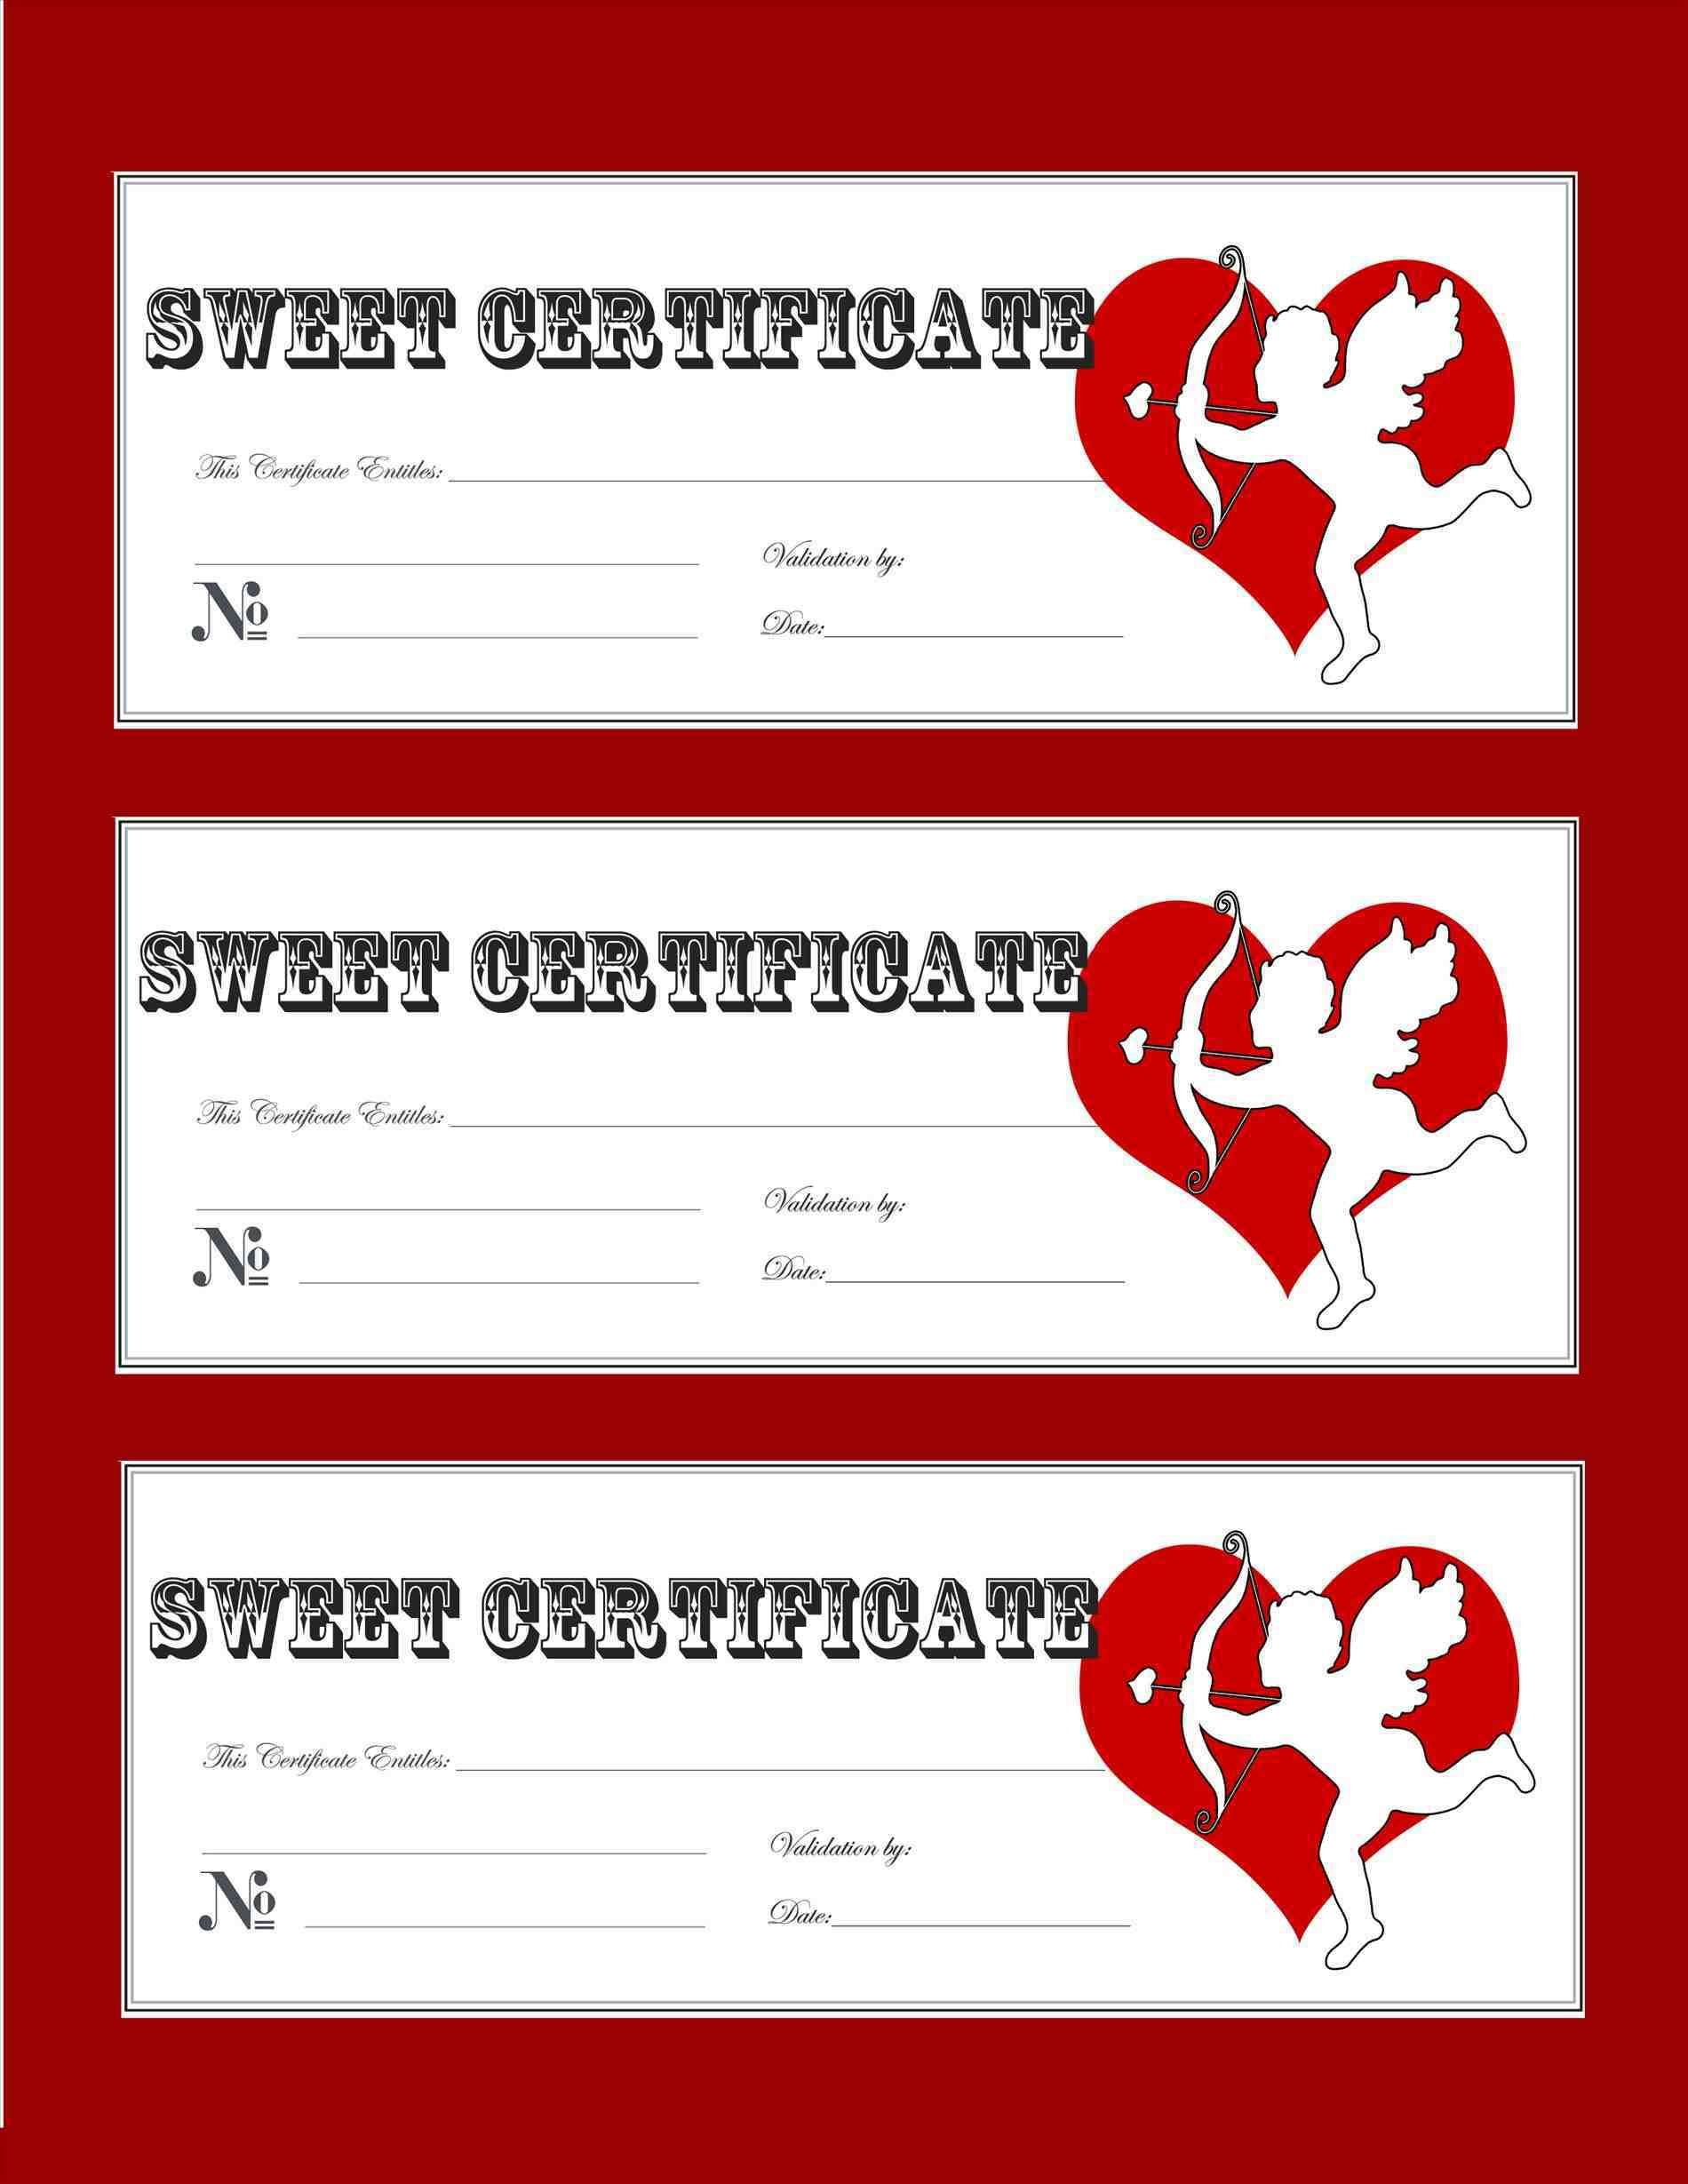 Gift certificate templates christmas templates printable gift tags gift certificate templates christmas templates printable gift tags cards crafts openoffice certificate template image collections openoffice yelopaper Images